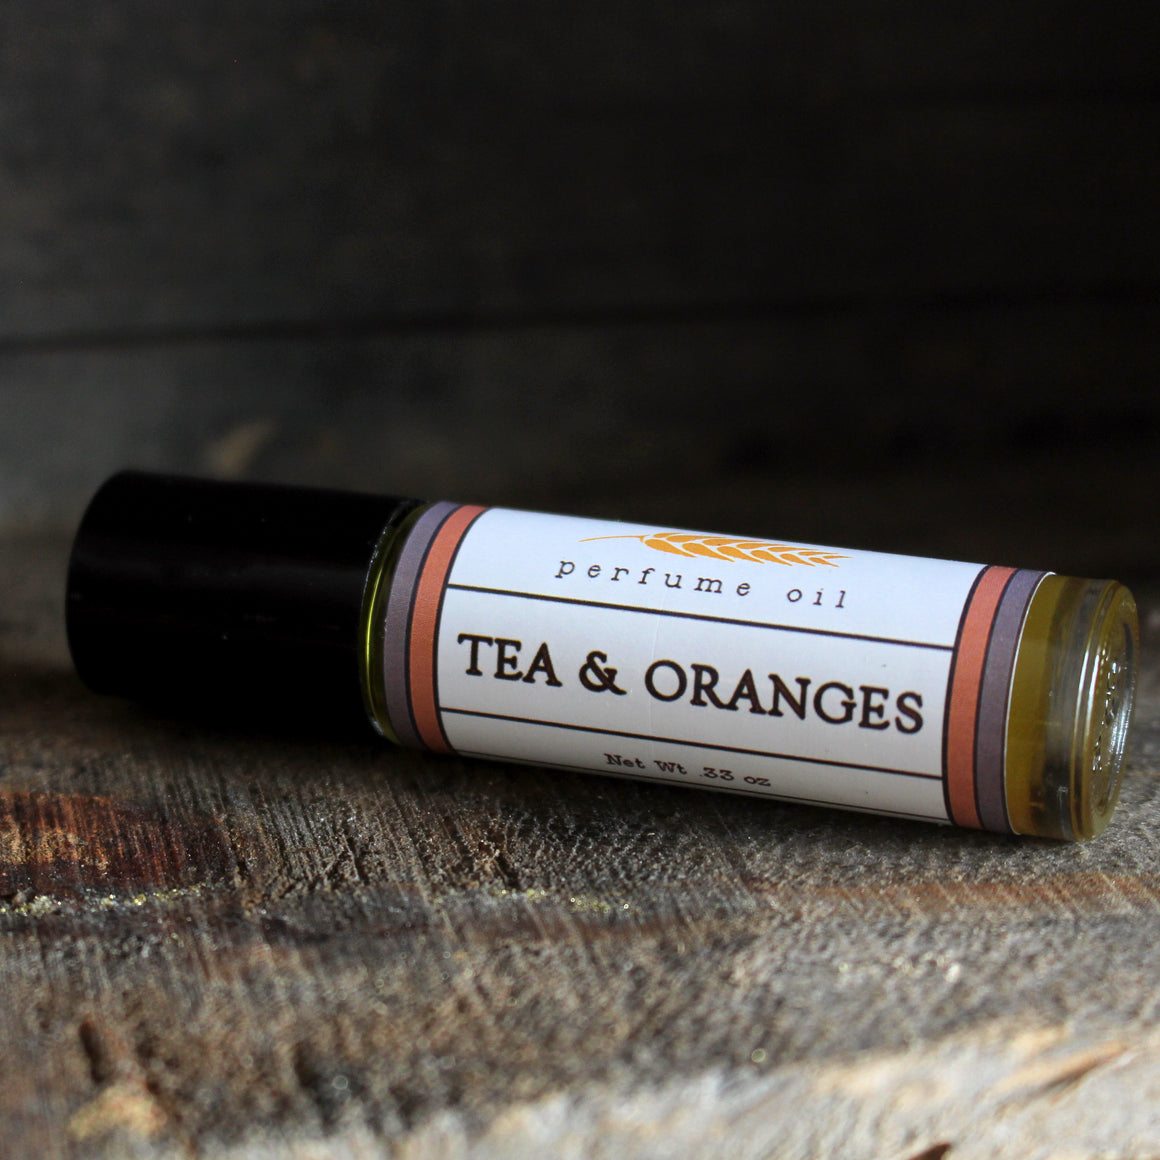 Tea & Oranges Perfume Oil